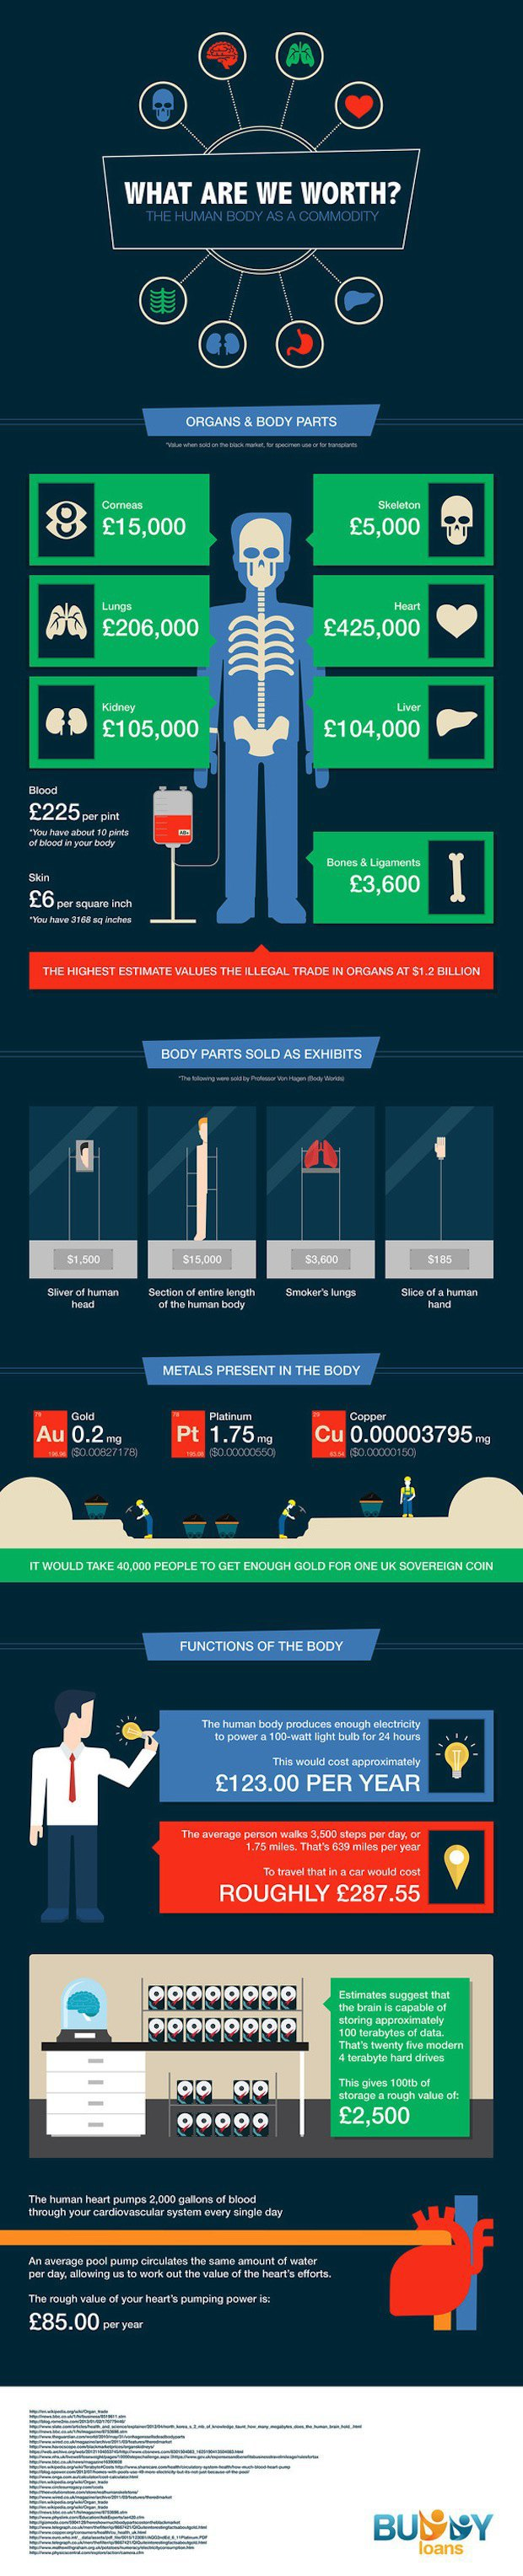 Image via The Infographics. Image 1.